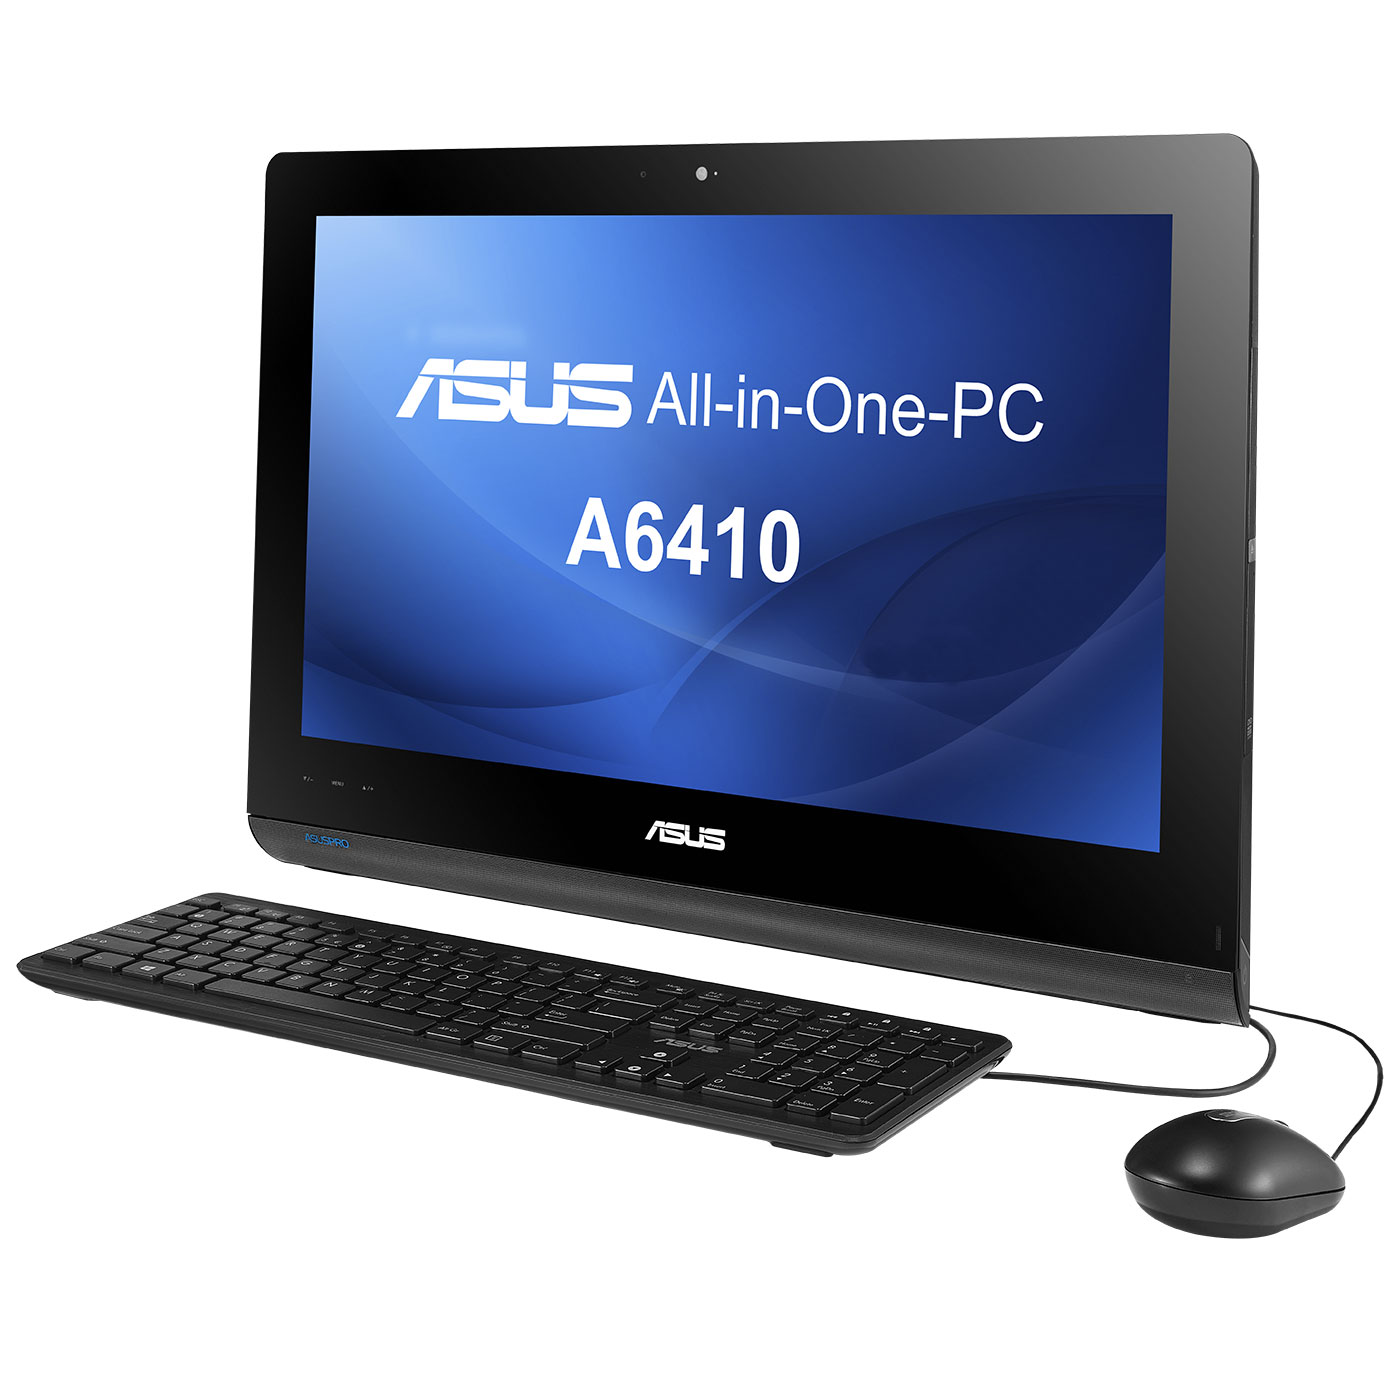 asus all in one pc a6410 bc046t pc de bureau asus sur ldlc. Black Bedroom Furniture Sets. Home Design Ideas